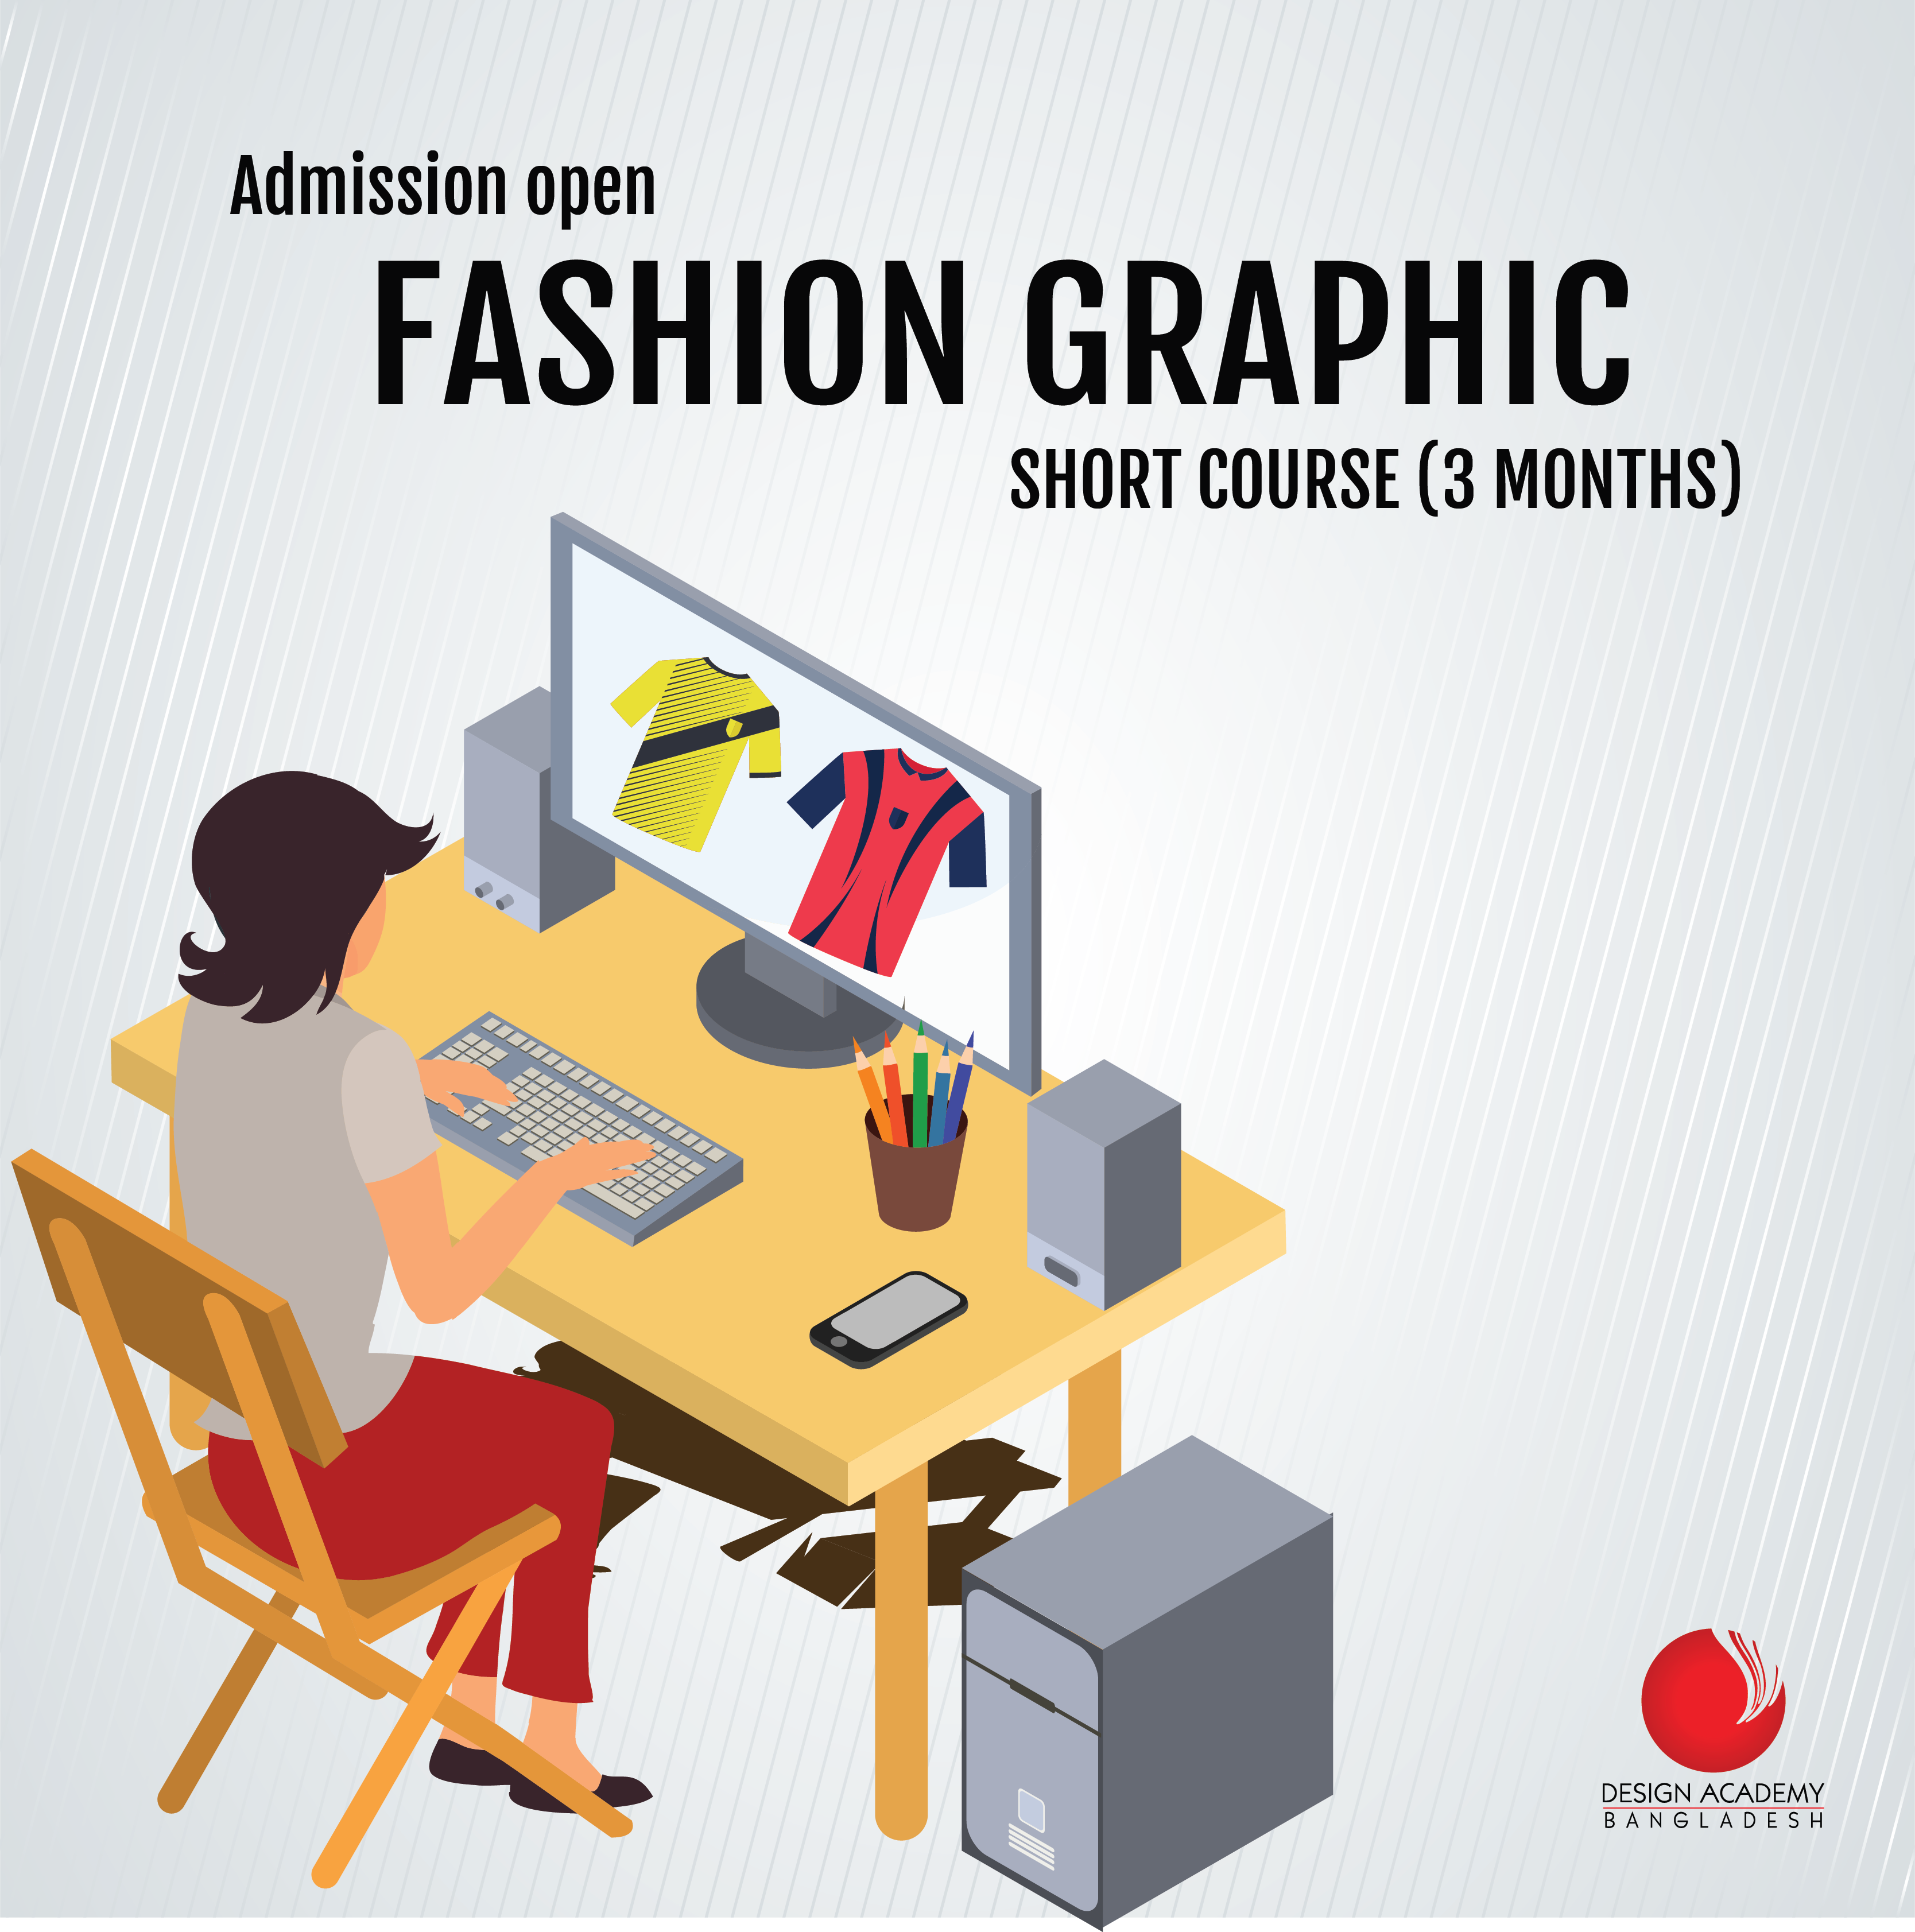 Pin By Design Academy Bangladesh On Academic Subject List Diploma In Fashion Designing Fashion Graphic Design Design